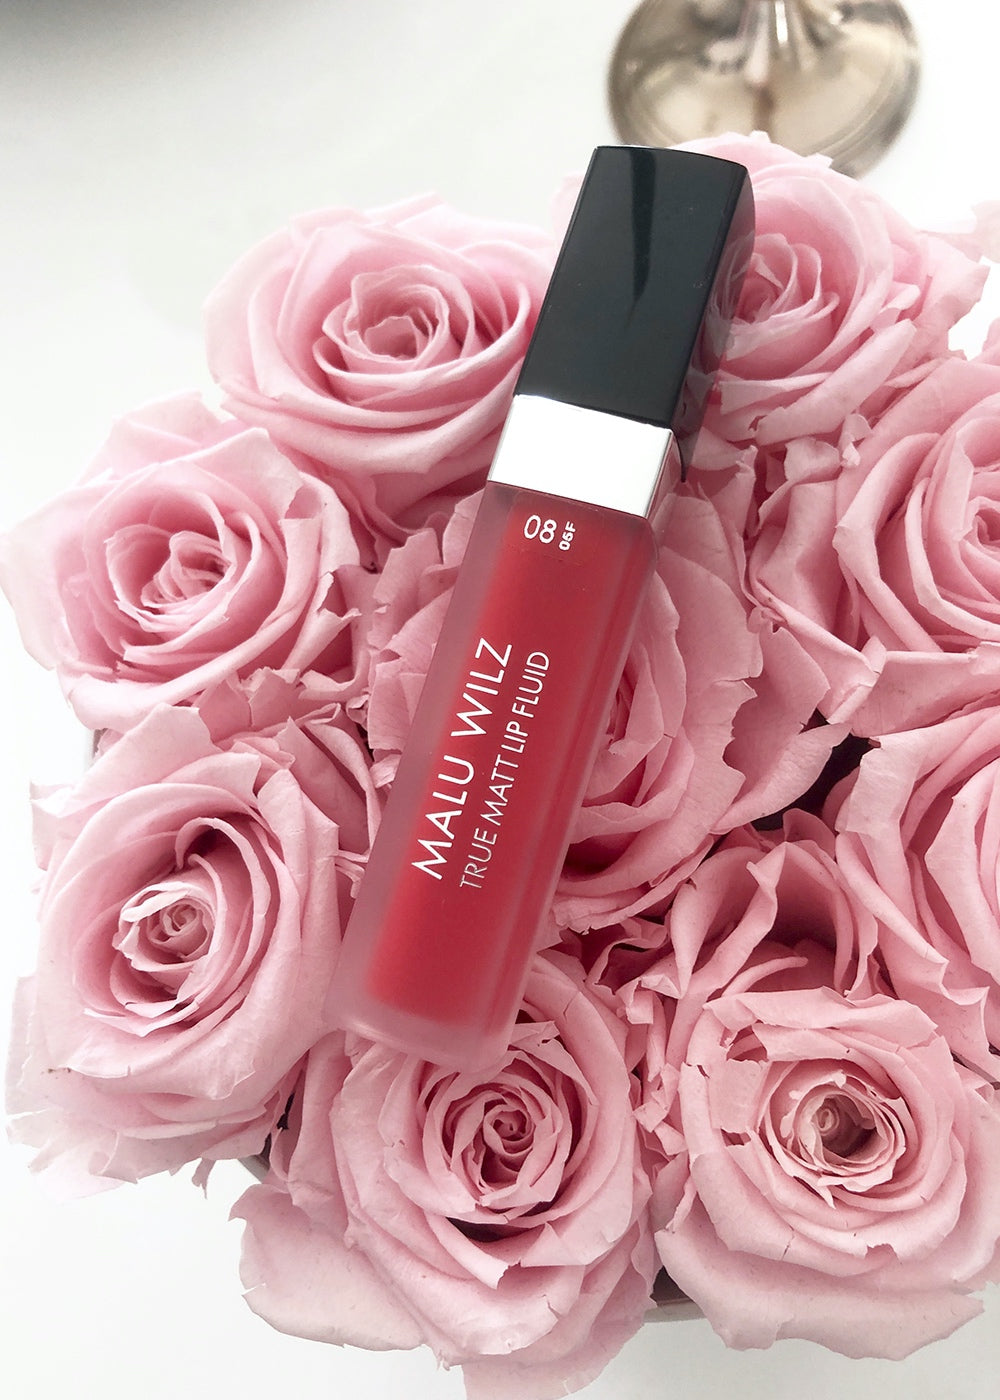 Malu Wilz True Matt Lip Fluid Red Perfection, Nr. 08